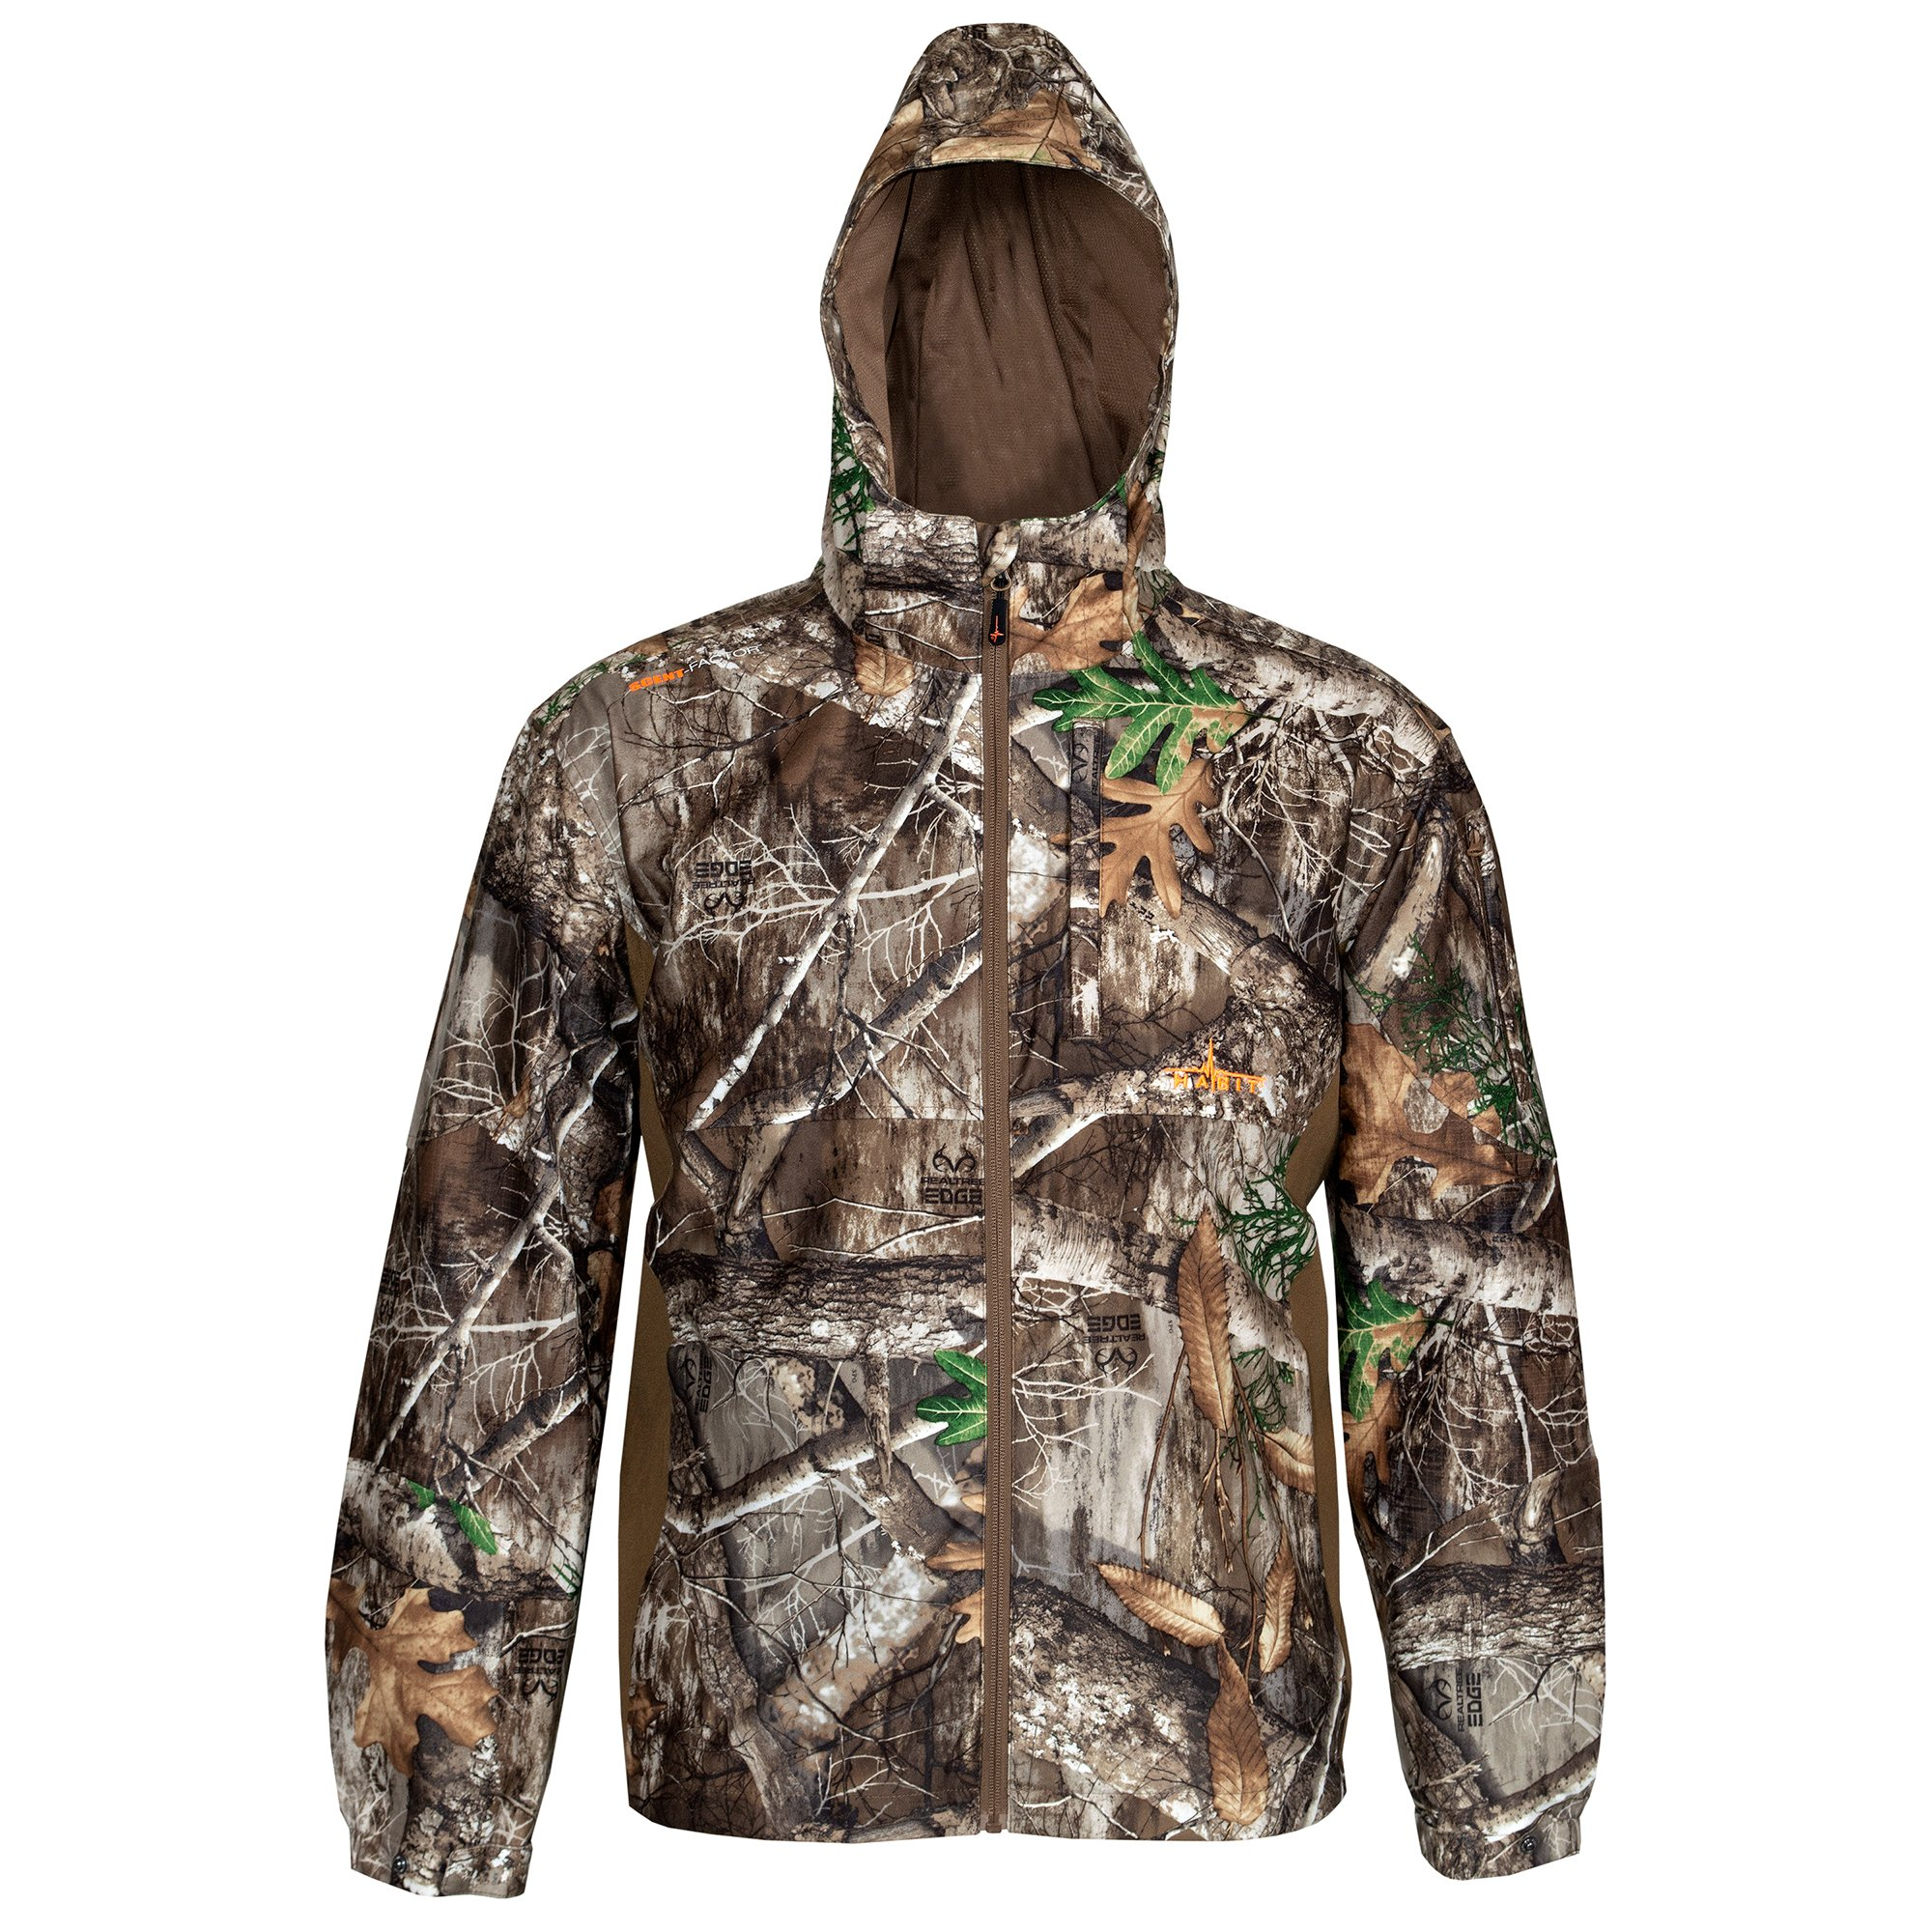 Habit Men's Scent-Factor Hunting Jacket